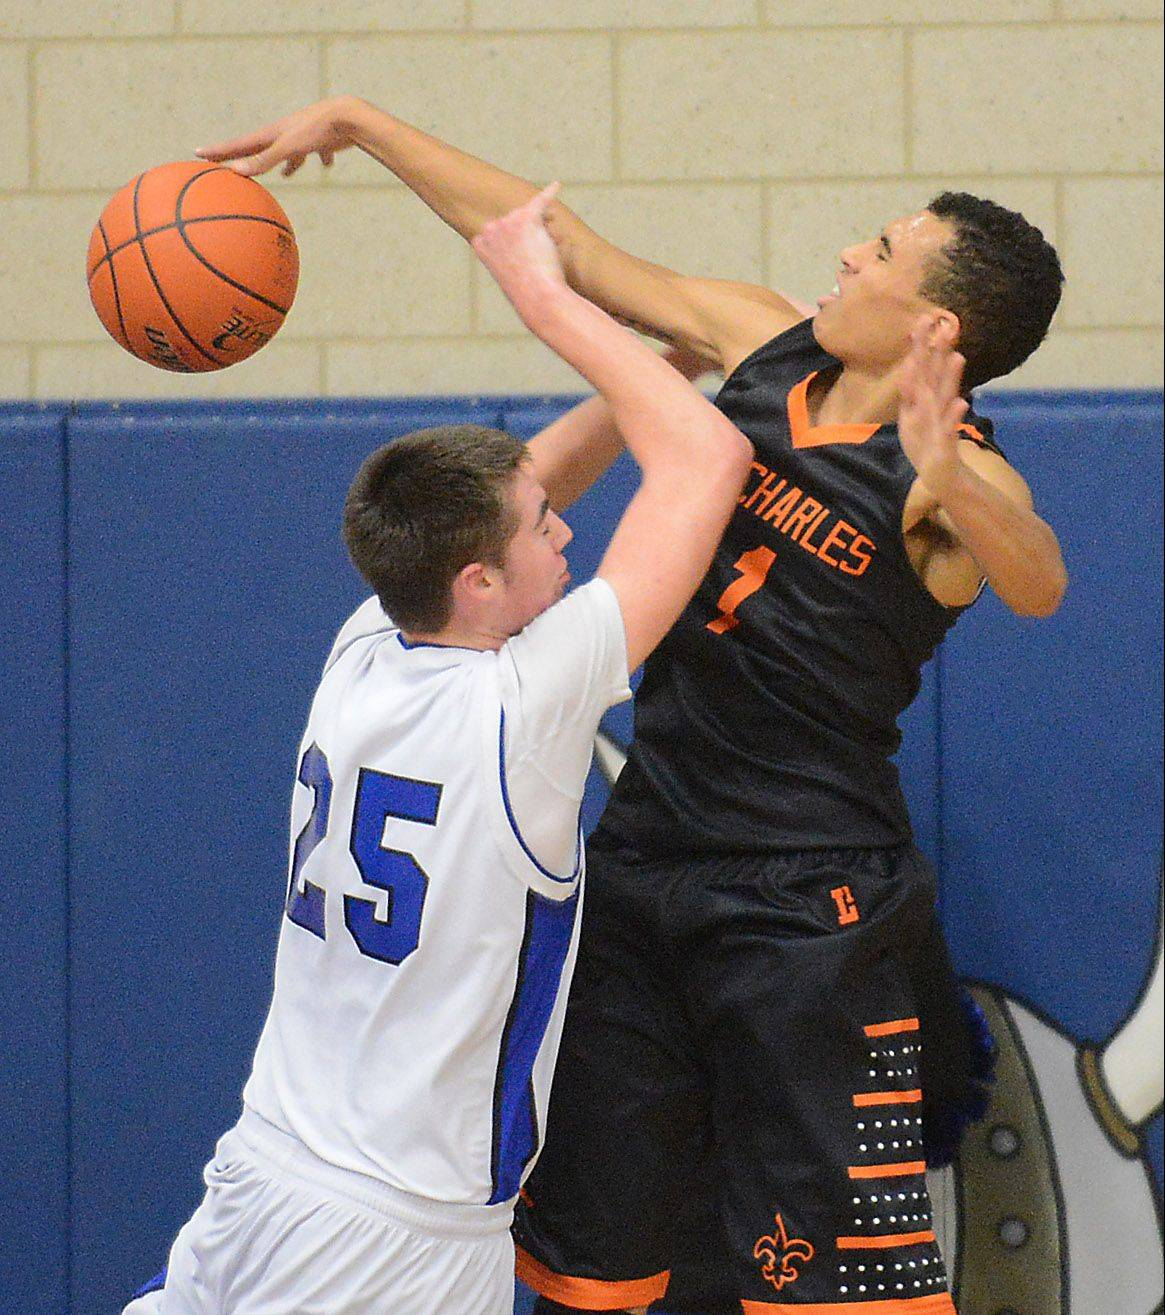 St. Charles East's AJ Washington blocks a shot by Geneva's Nate Navigato.